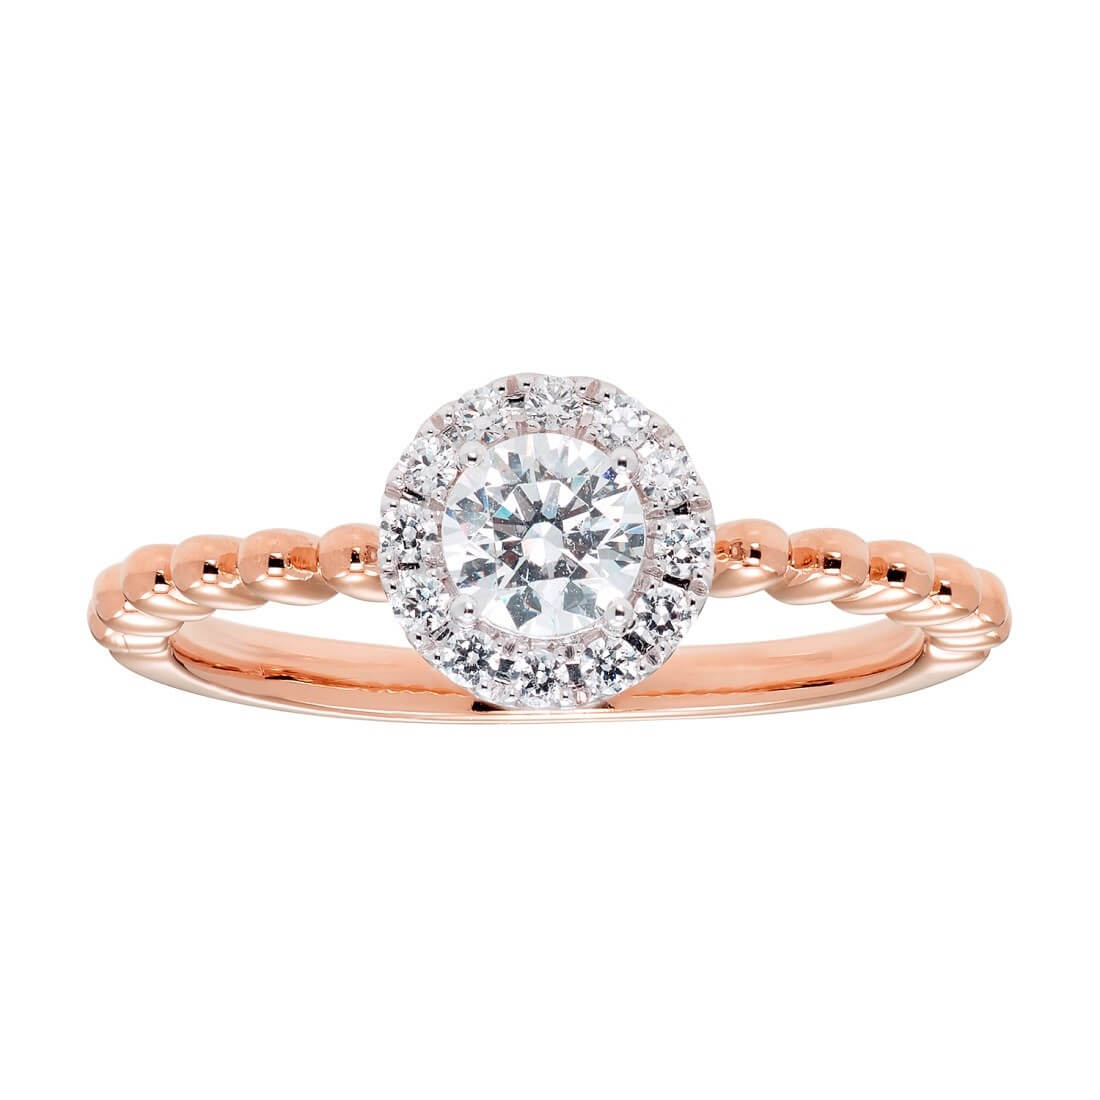 ¾ carat Diamond Engagement Ring in 14k Rose Gold